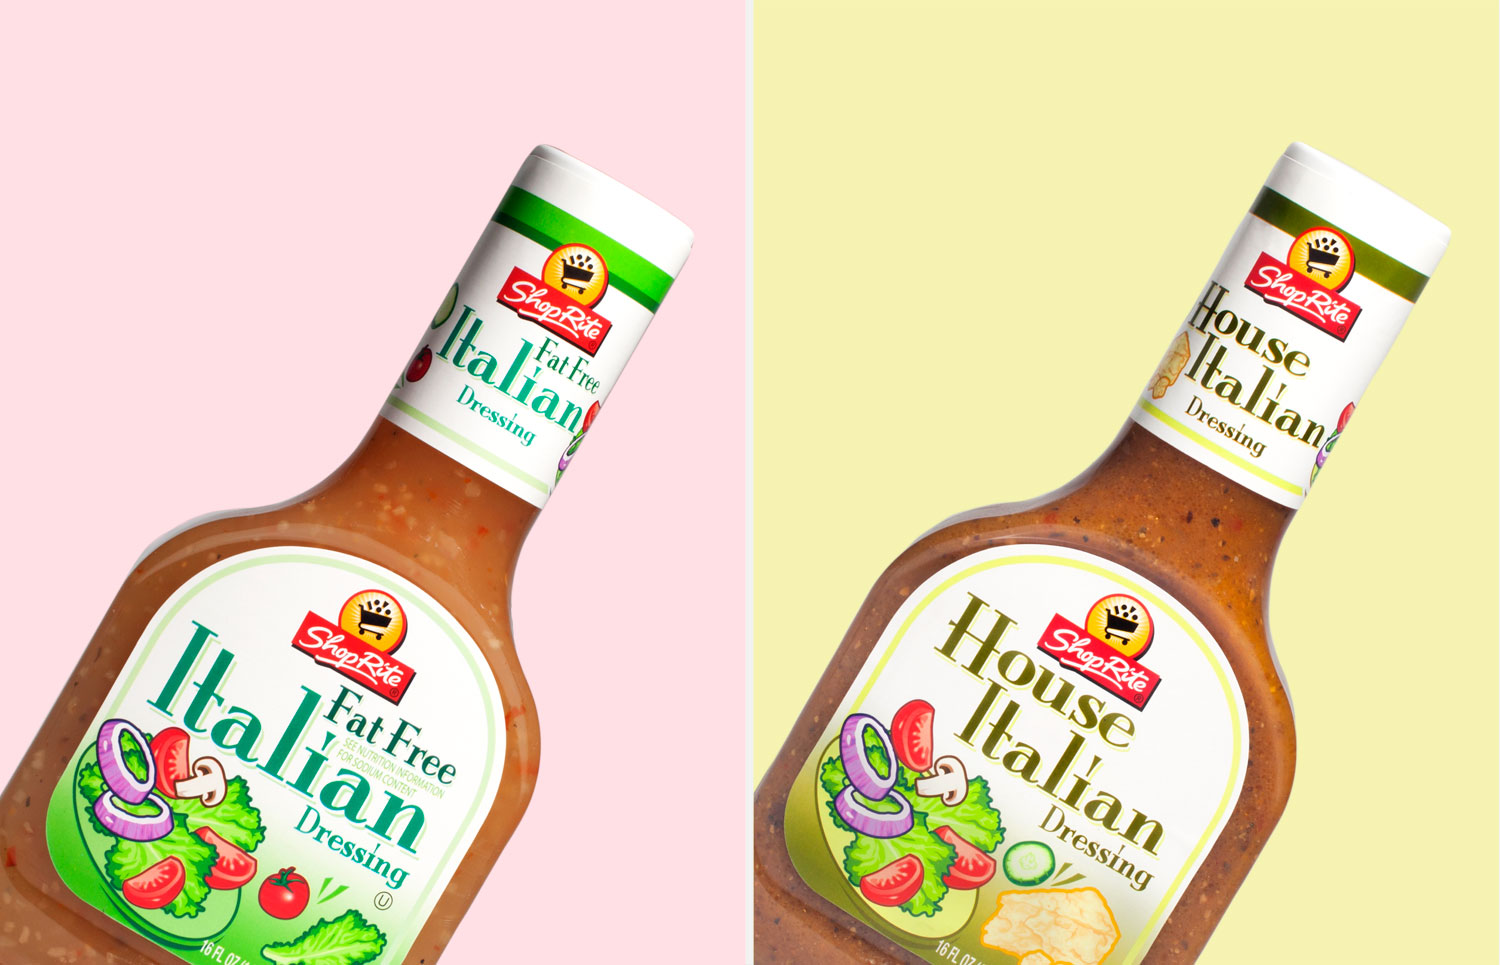 Which is better for you: Fat free salad dressing or regular salad dressing?